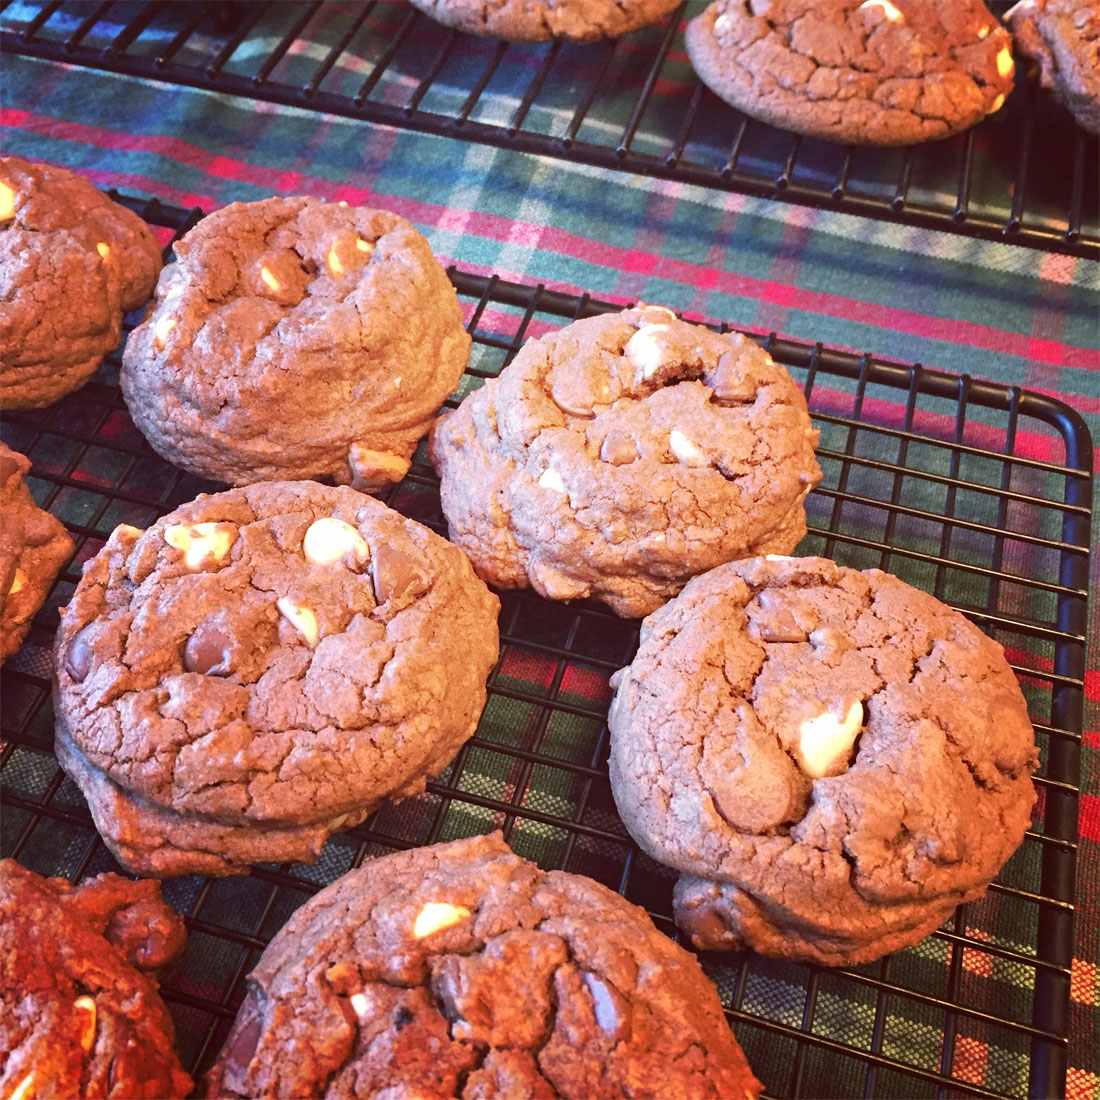 Brewster By The Sea Cookie Swap | Brewster By the Sea Cape Cod Inn | Brewster, MA